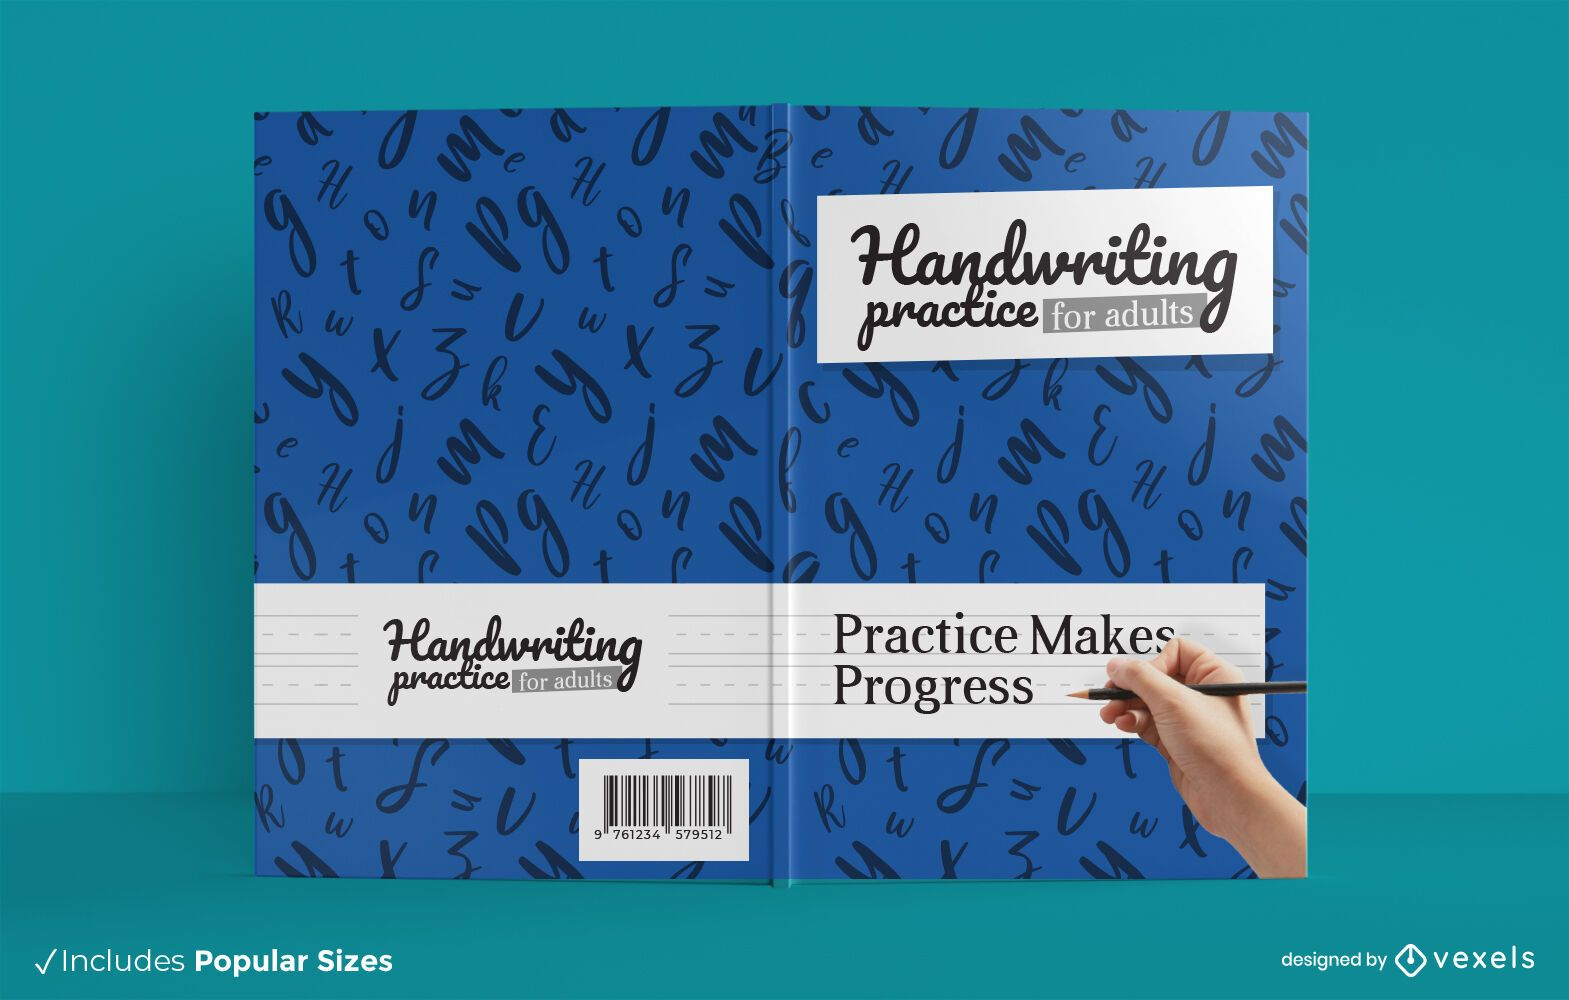 Handwriting practice adults book cover design